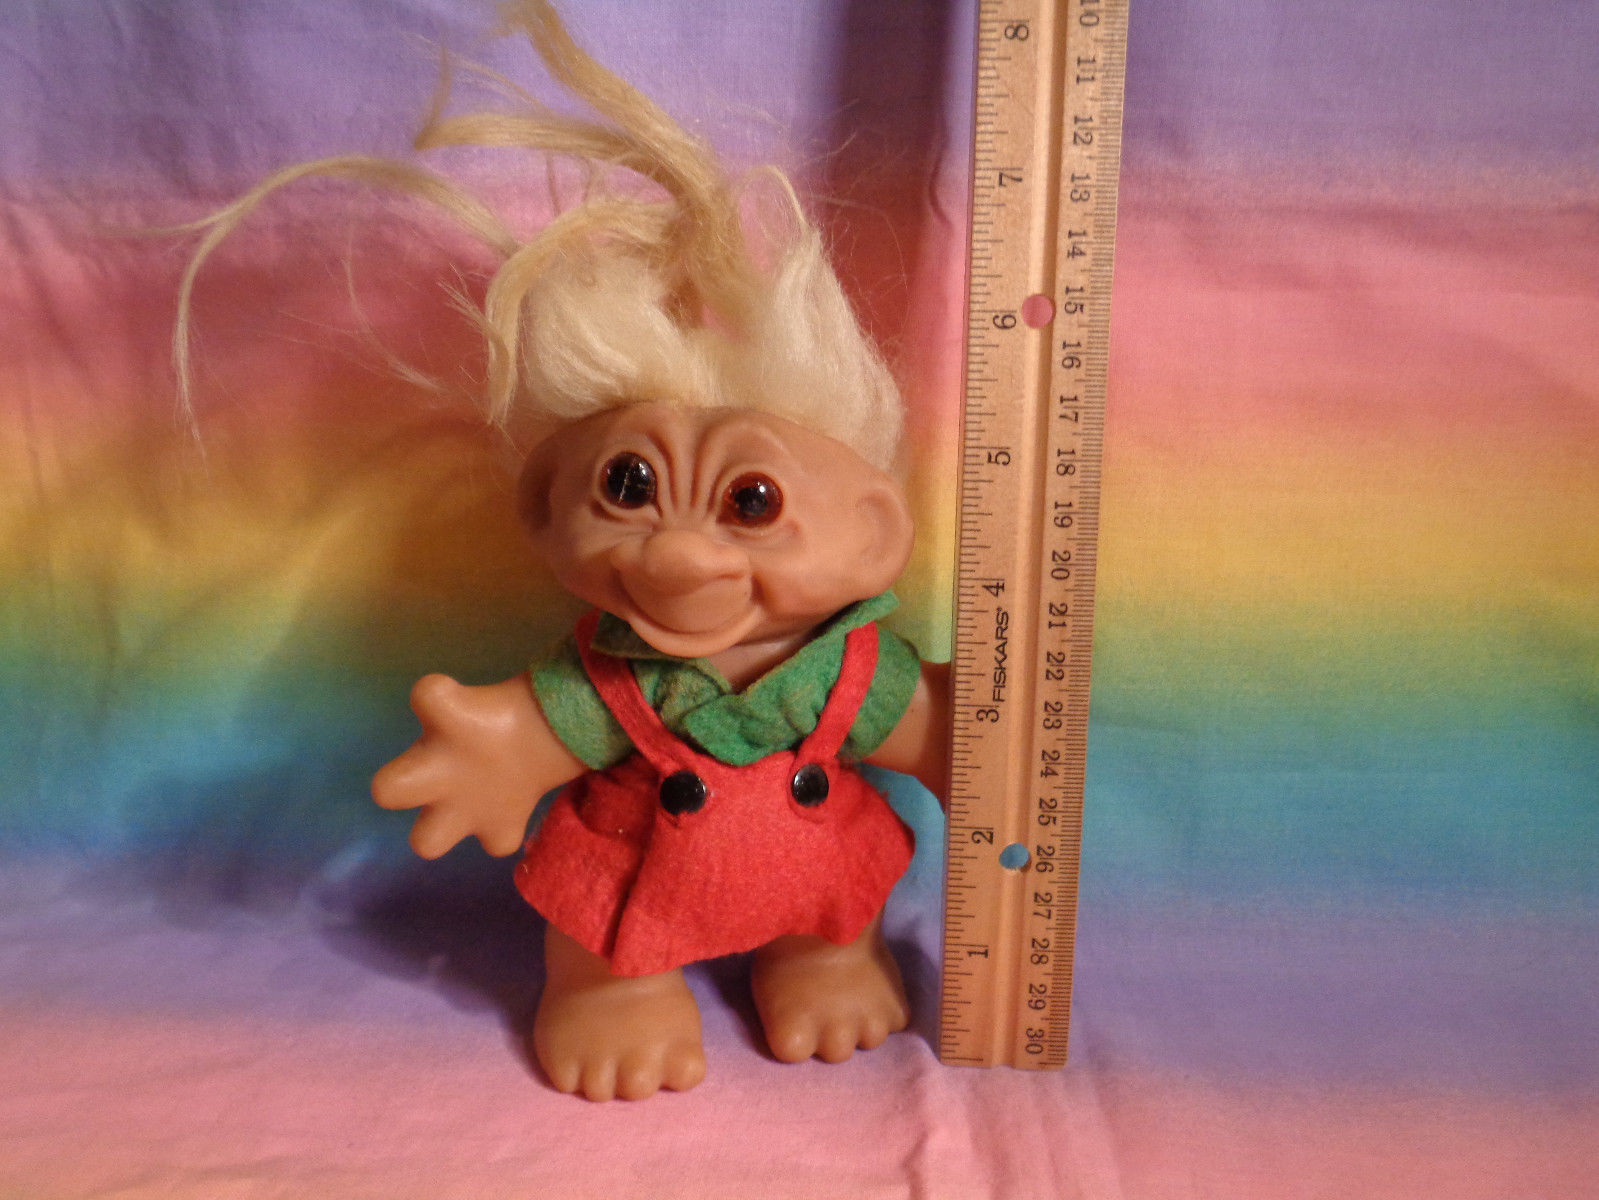 Vintage 1960's Thomas Dam Troll w/ Original Outfit Made in Denmark - as is